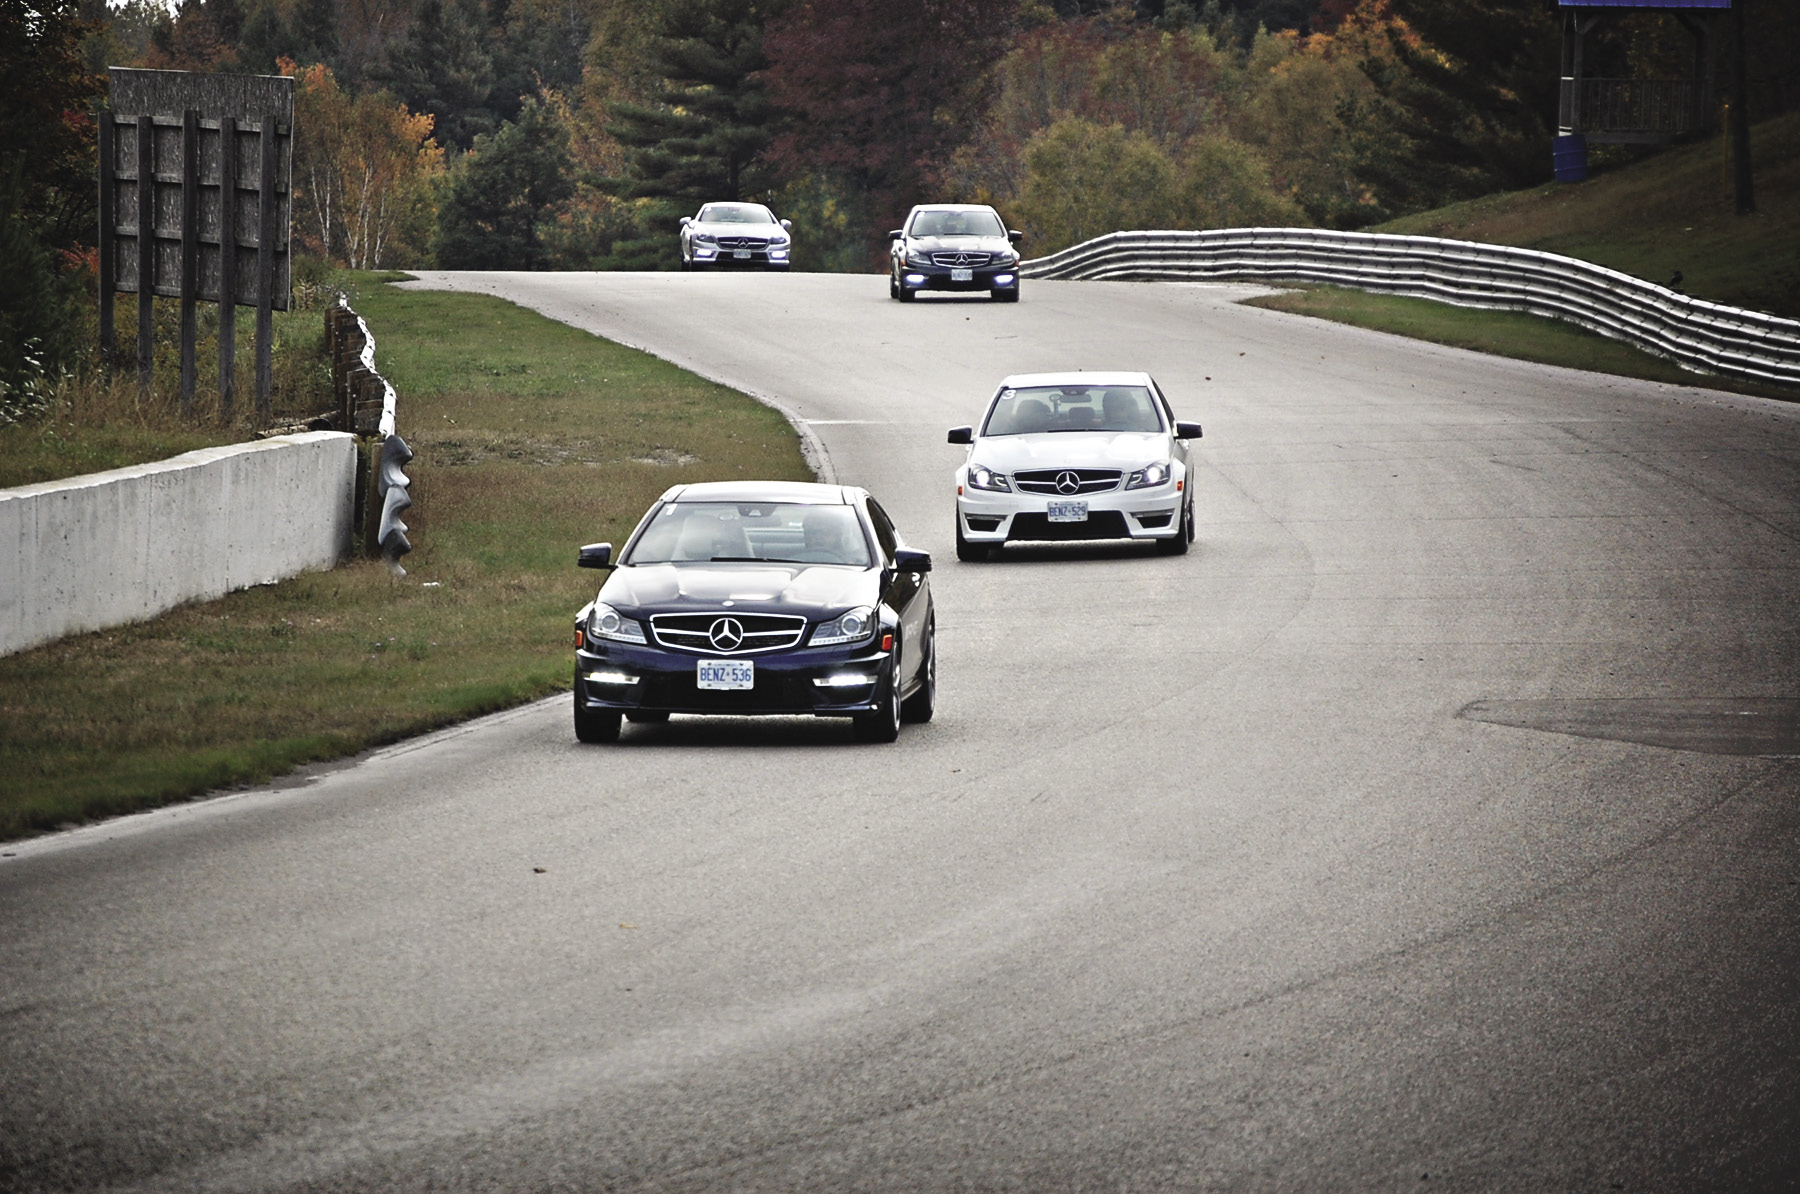 To 5B or not to 5B: Two days, a dozen AMGs, one Mosport